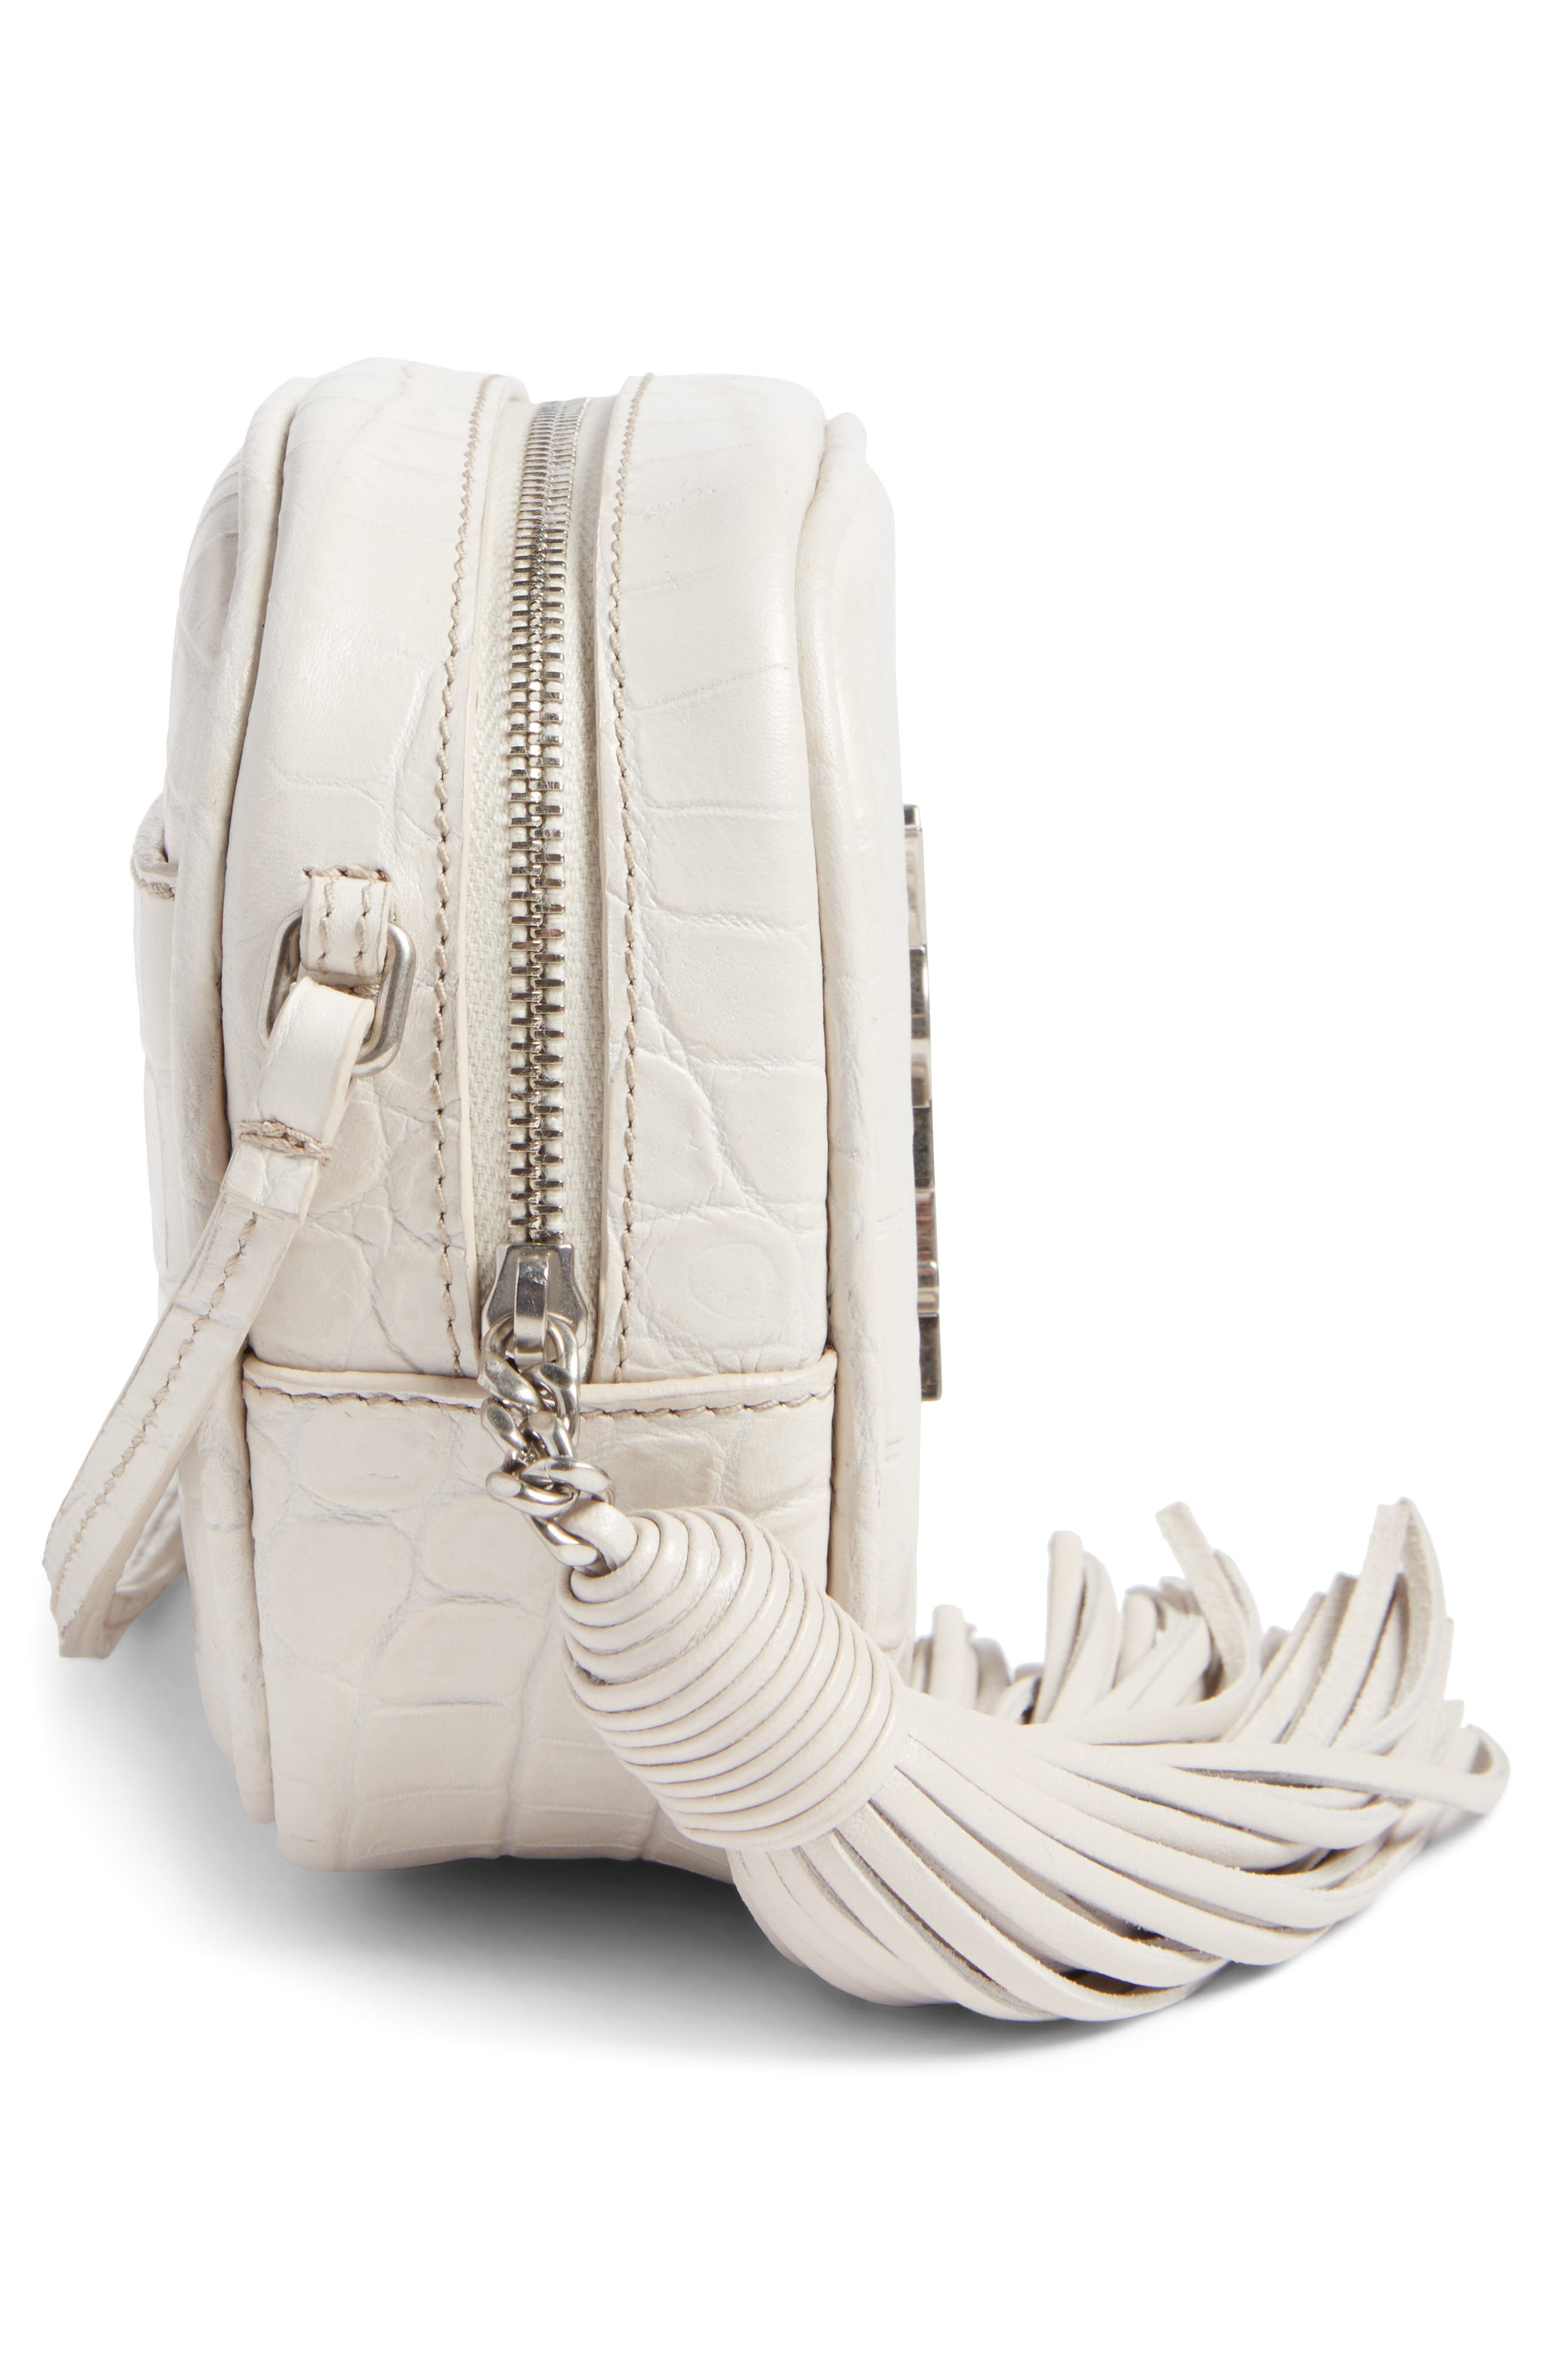 Monogram Blogger Leather Crossbody Bag,                             Alternate thumbnail 3, color,                             Icy White